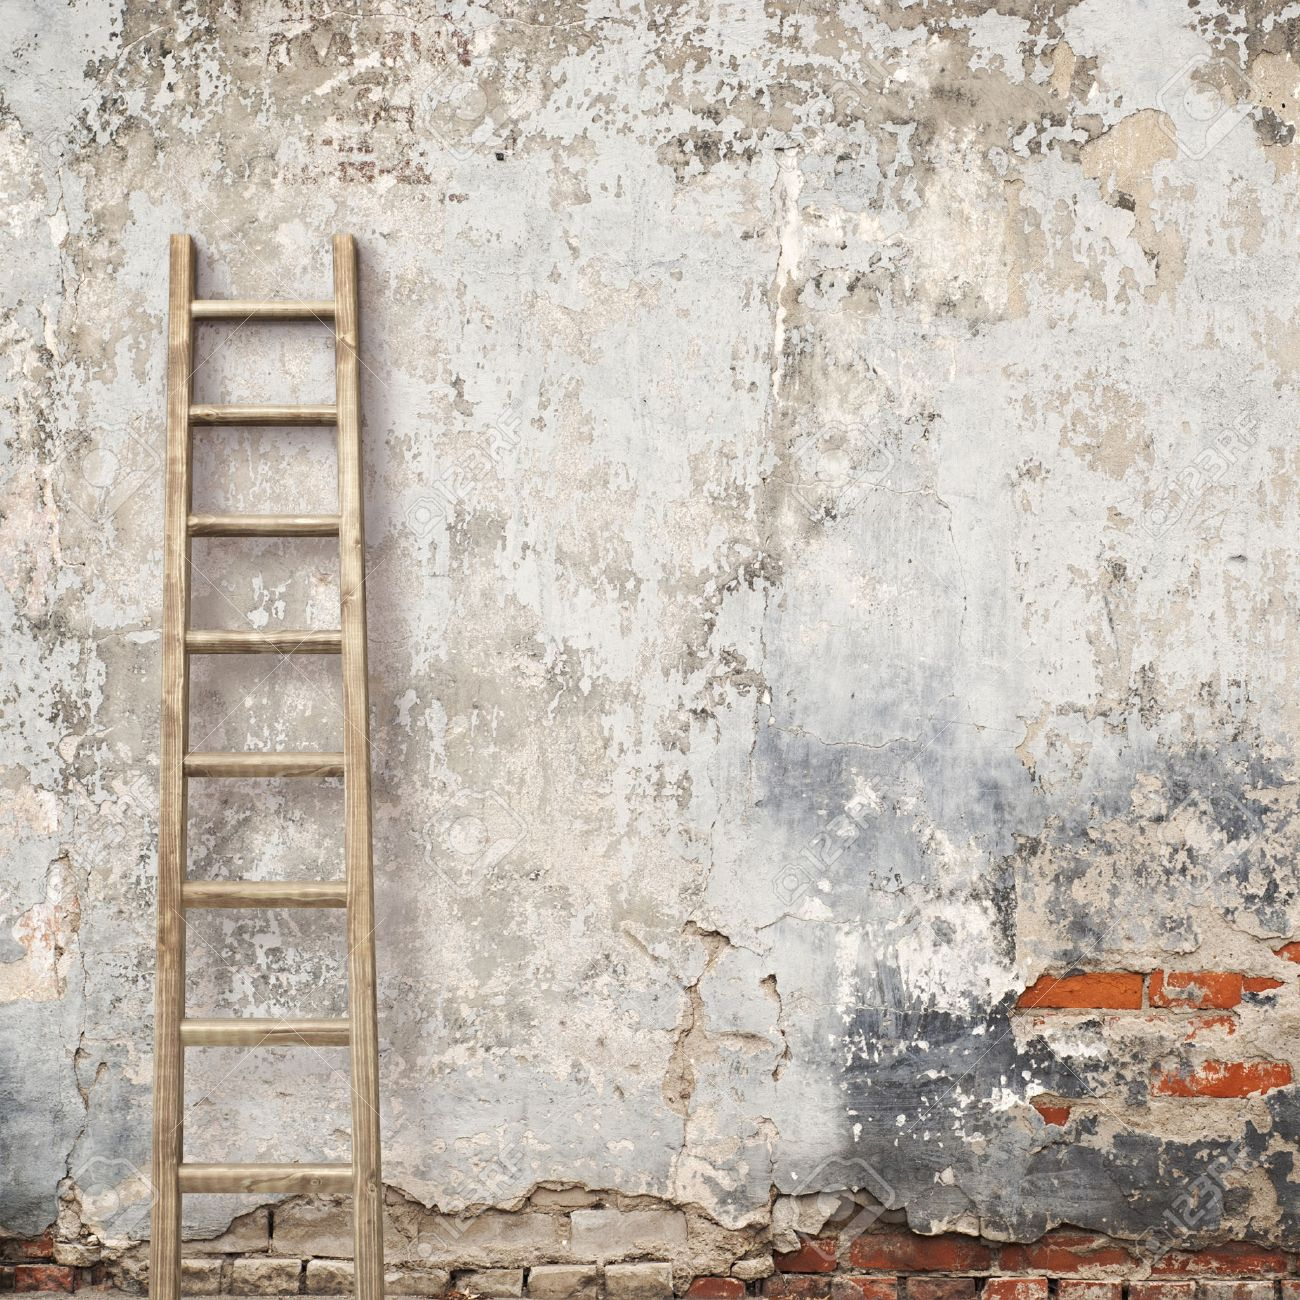 Plain wood table with hipster brick wall background stock photo - Weathered Stucco Wall With Wooden Ladder Background